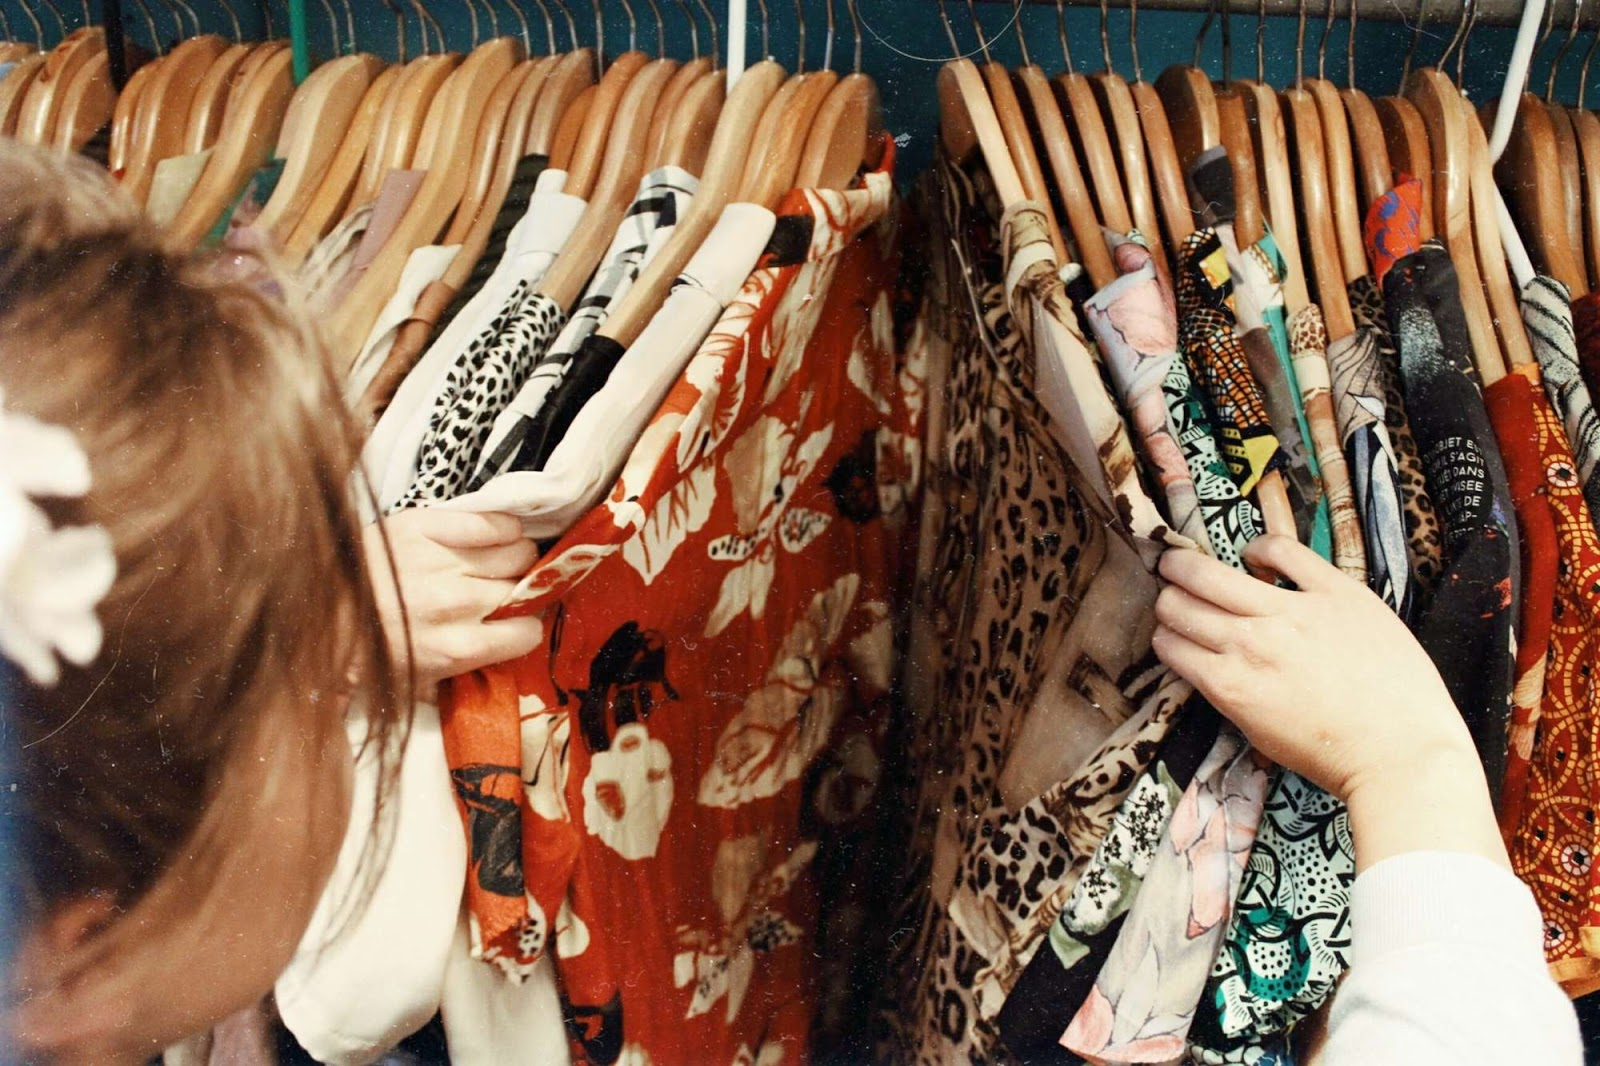 A woman looking through shirts on a clothes rack.